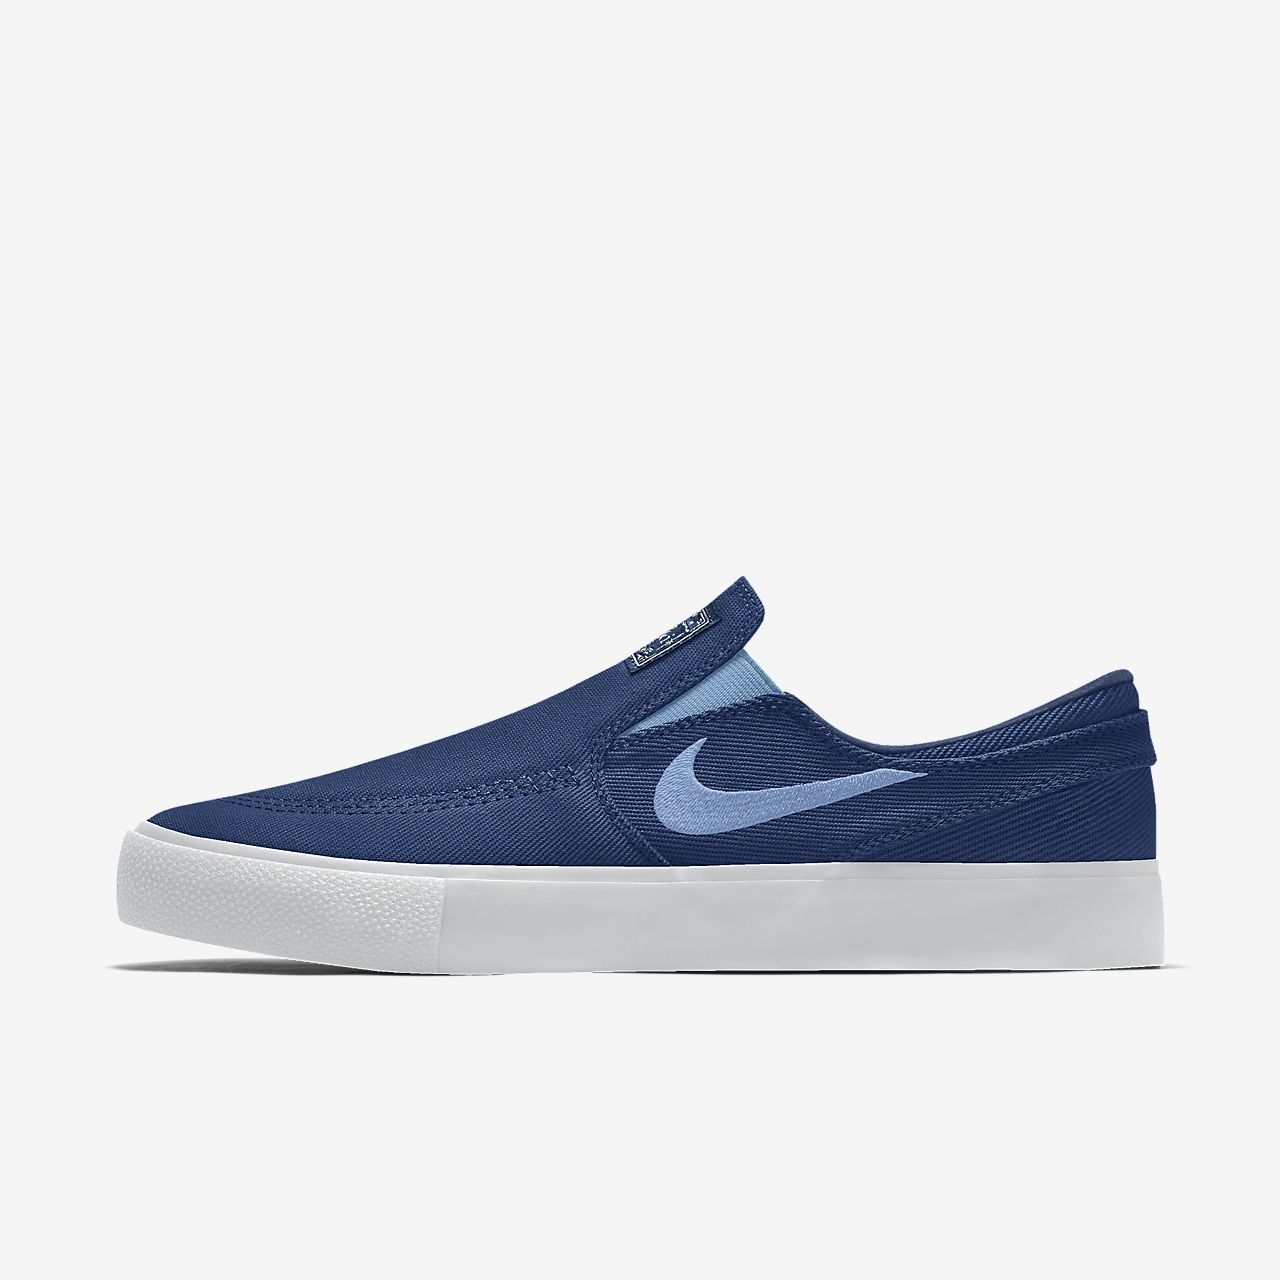 Nike SB Zoom Stefan Janoski Slip RM By You Custom Skate Shoe